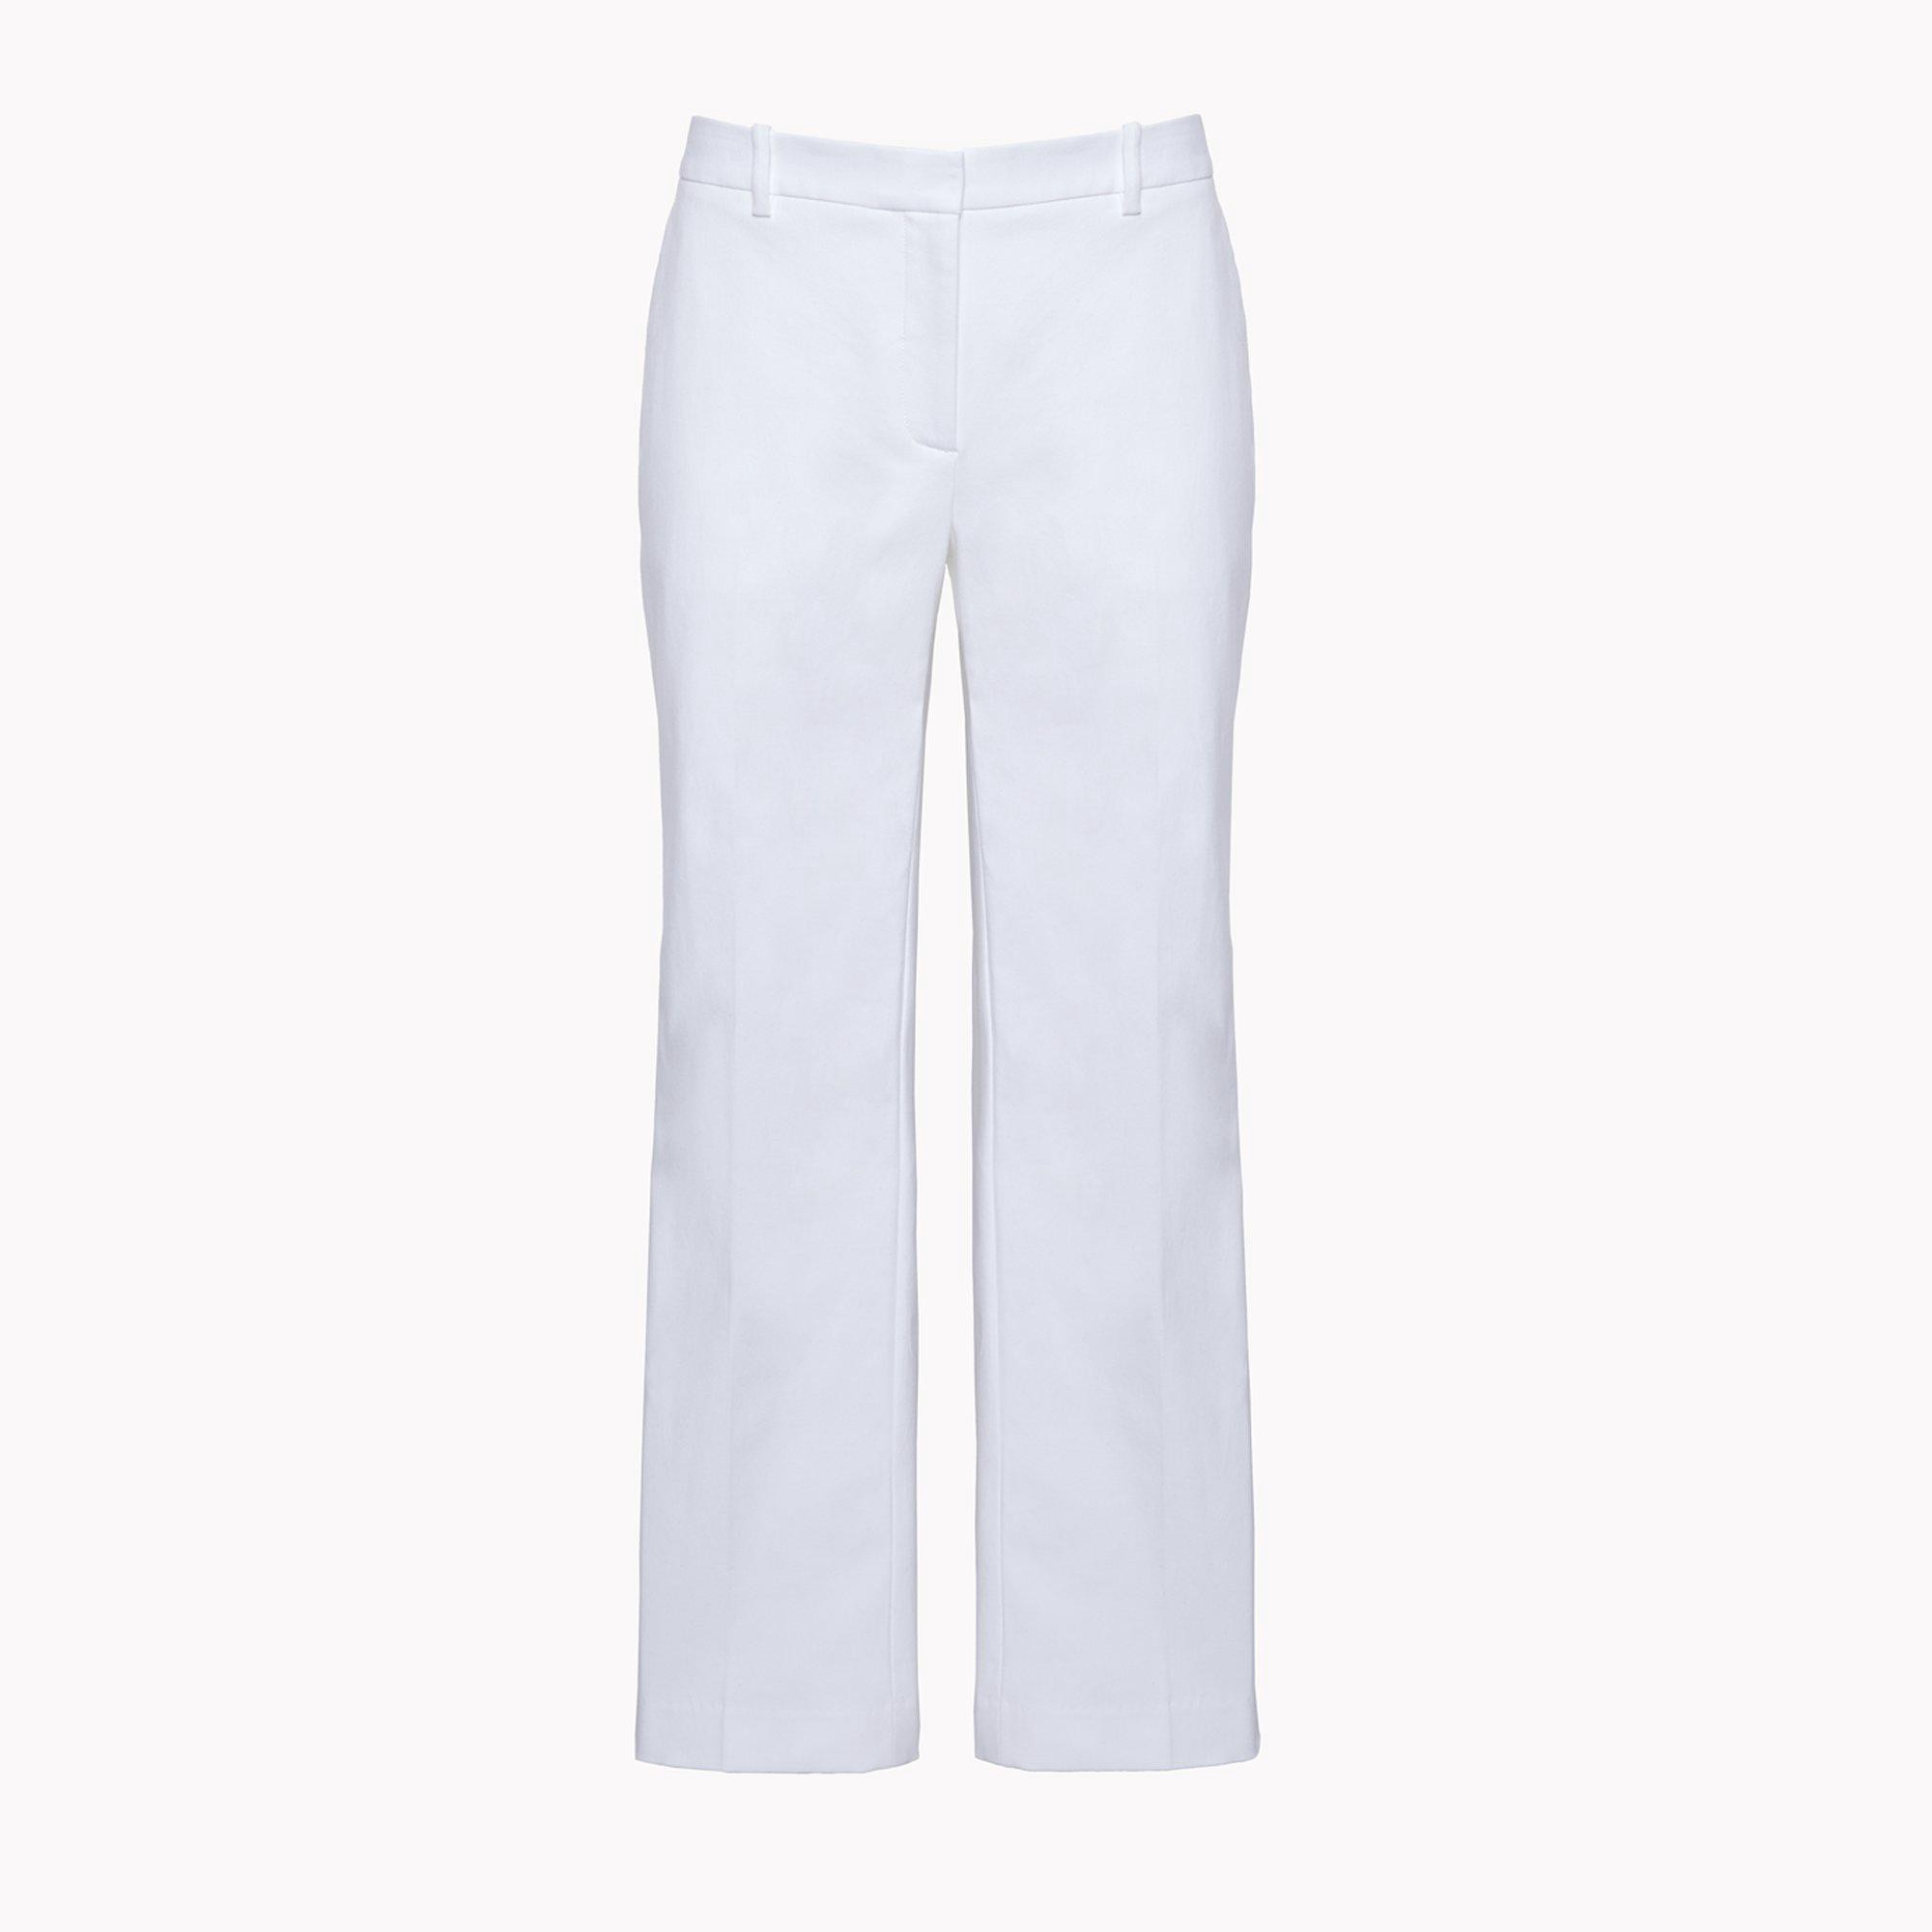 THEORY Slim Crop Pant - White